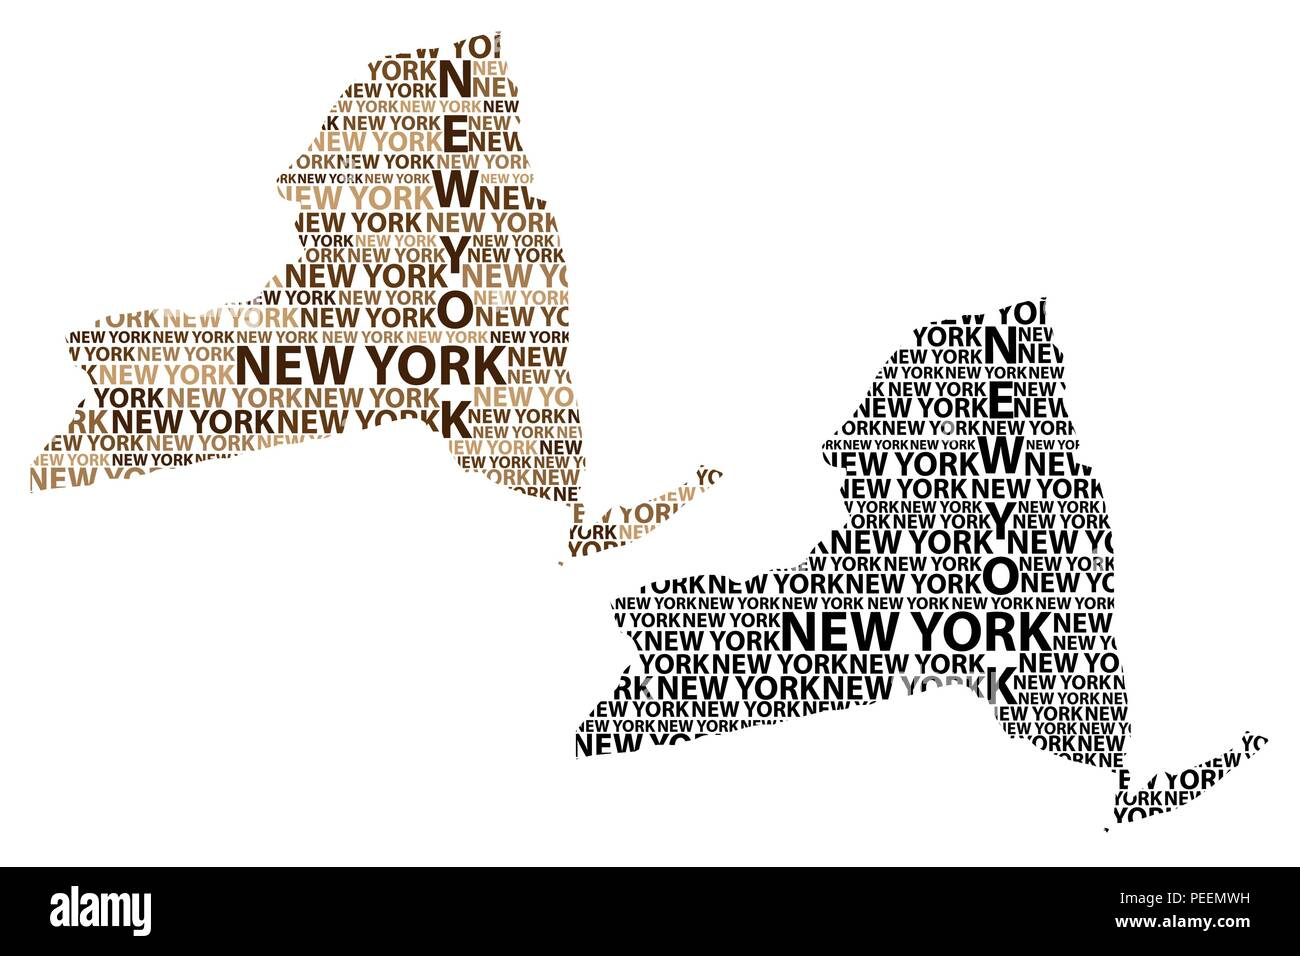 Sketch New York (United States of America) letter text map, New York ...